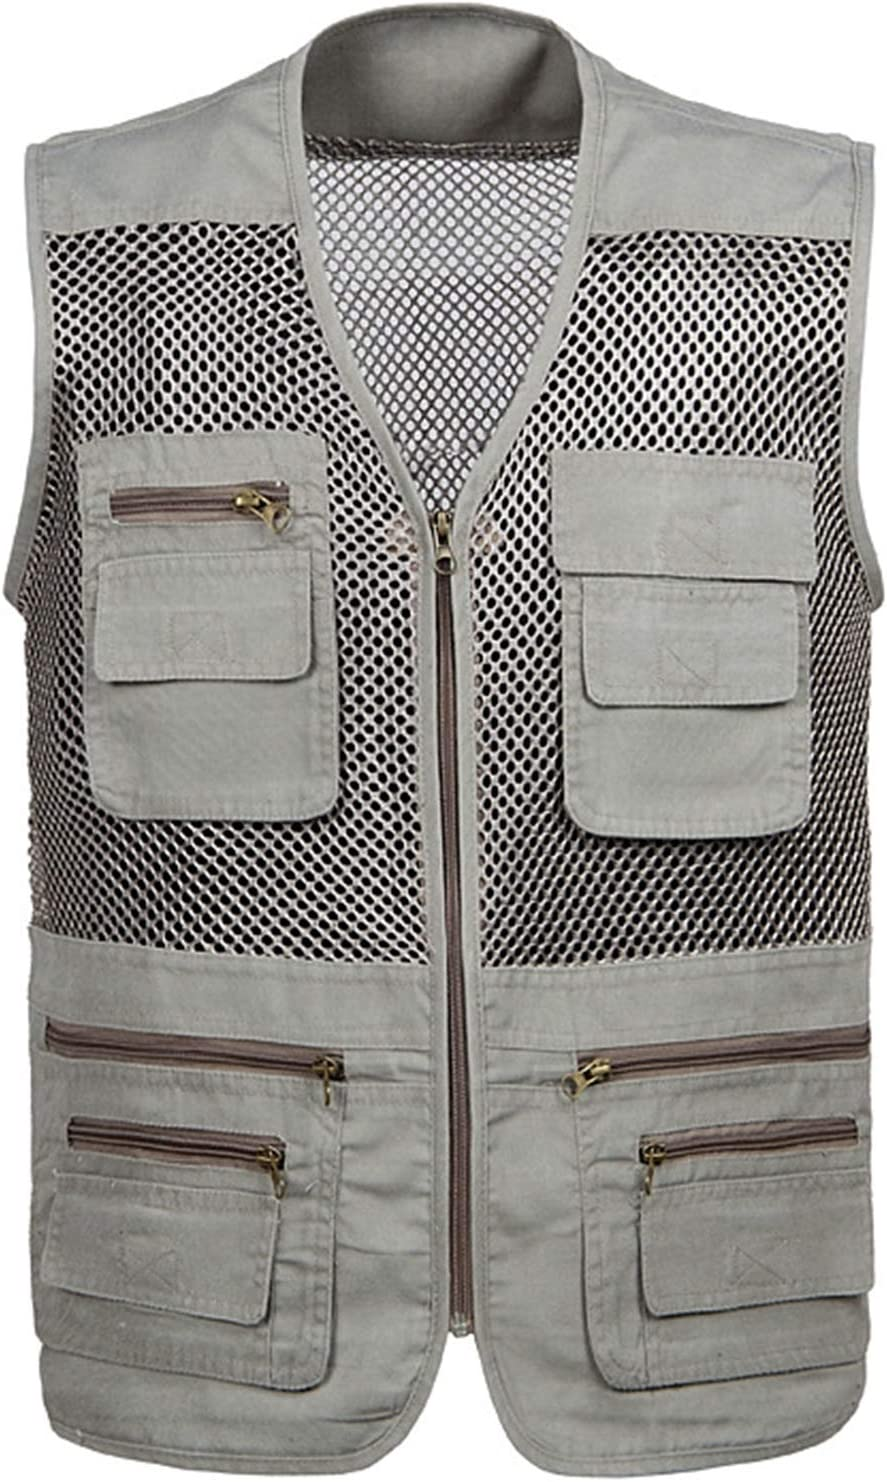 CNBPLS Large Size Mesh Quick-Drying Vests,Male with Multi-Pocket Waistcoat,Mens Breathable Fishing Vest Work Sleeveless Jacket,Beige,3XL